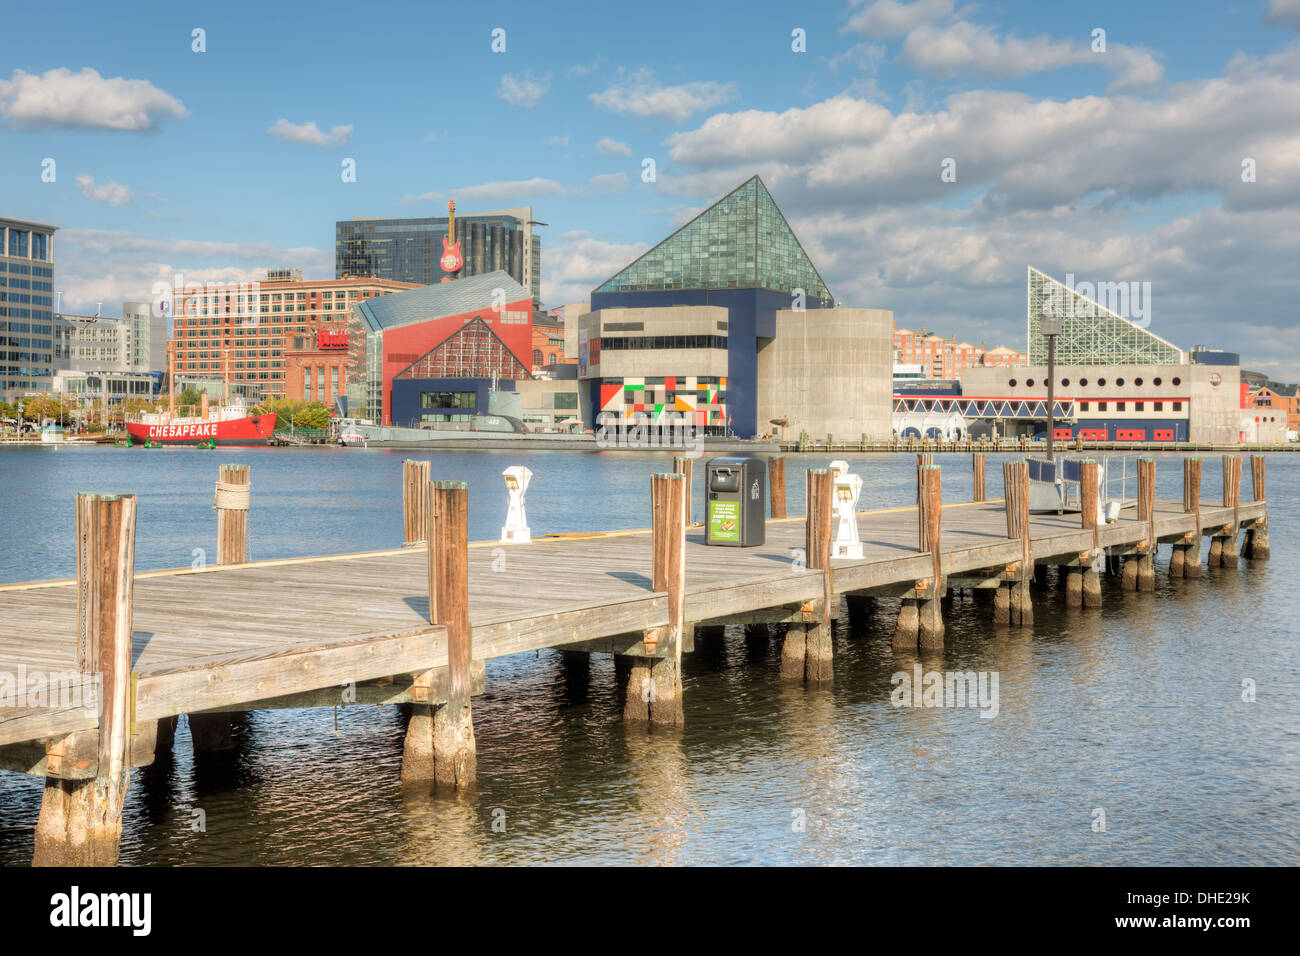 A view of the National Aquarium, Baltimore under a partly cloudy sky in Baltimore, Maryland. Stock Photo